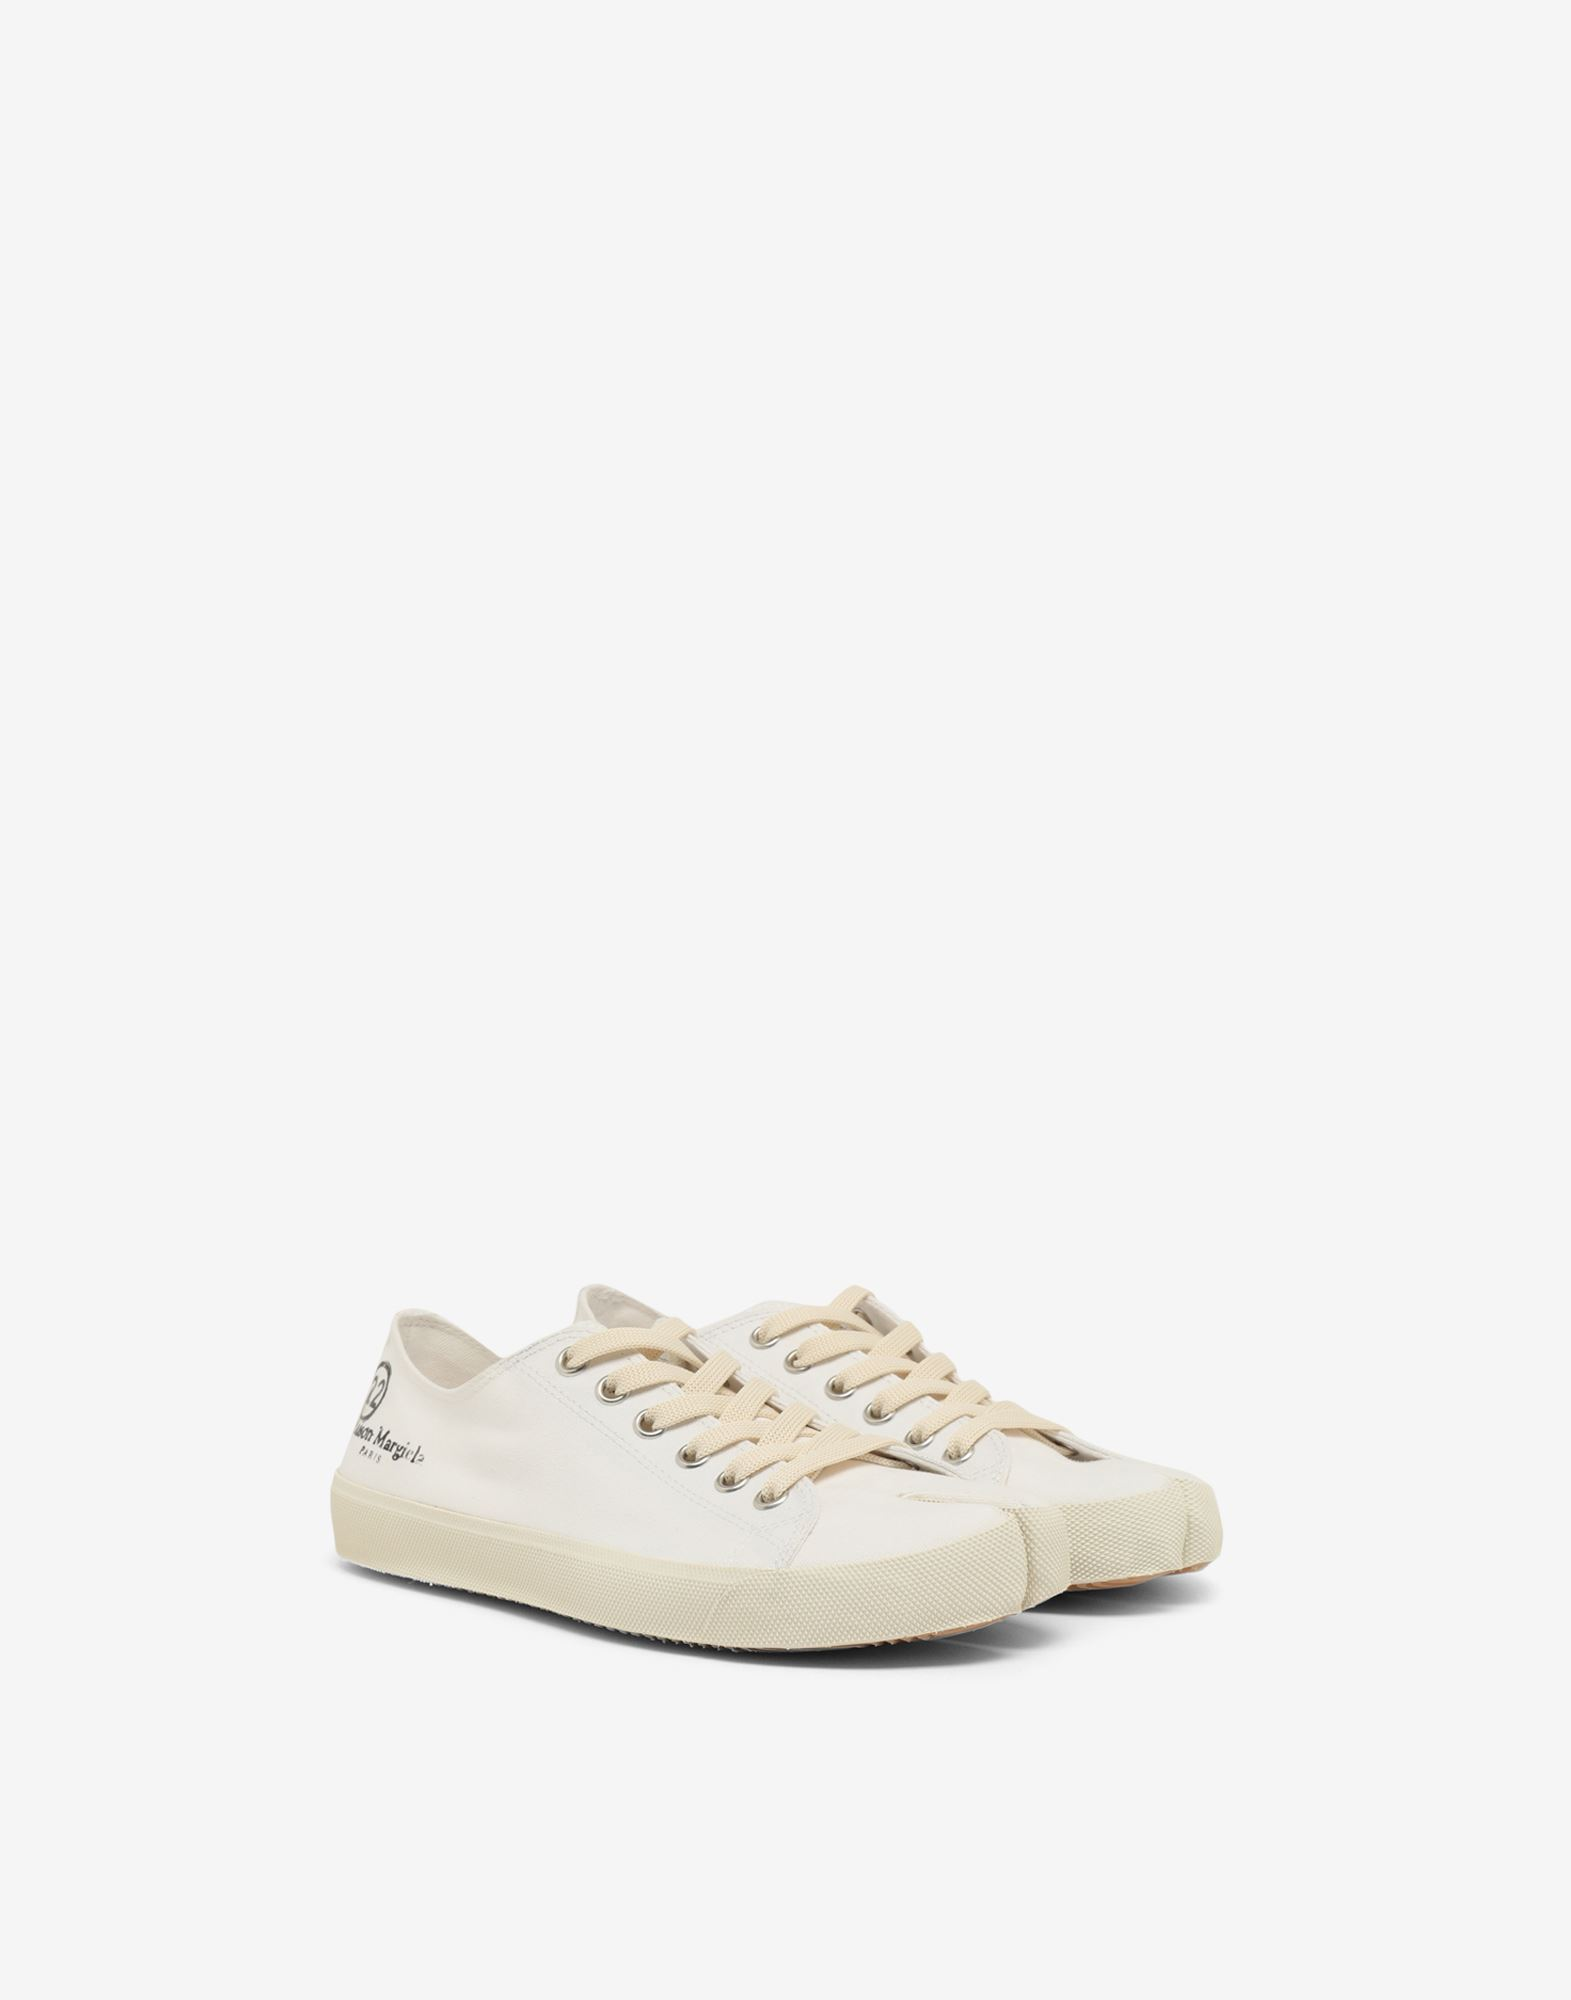 MAISON MARGIELA Tabi lace-up shoes Sneakers Tabi Man r